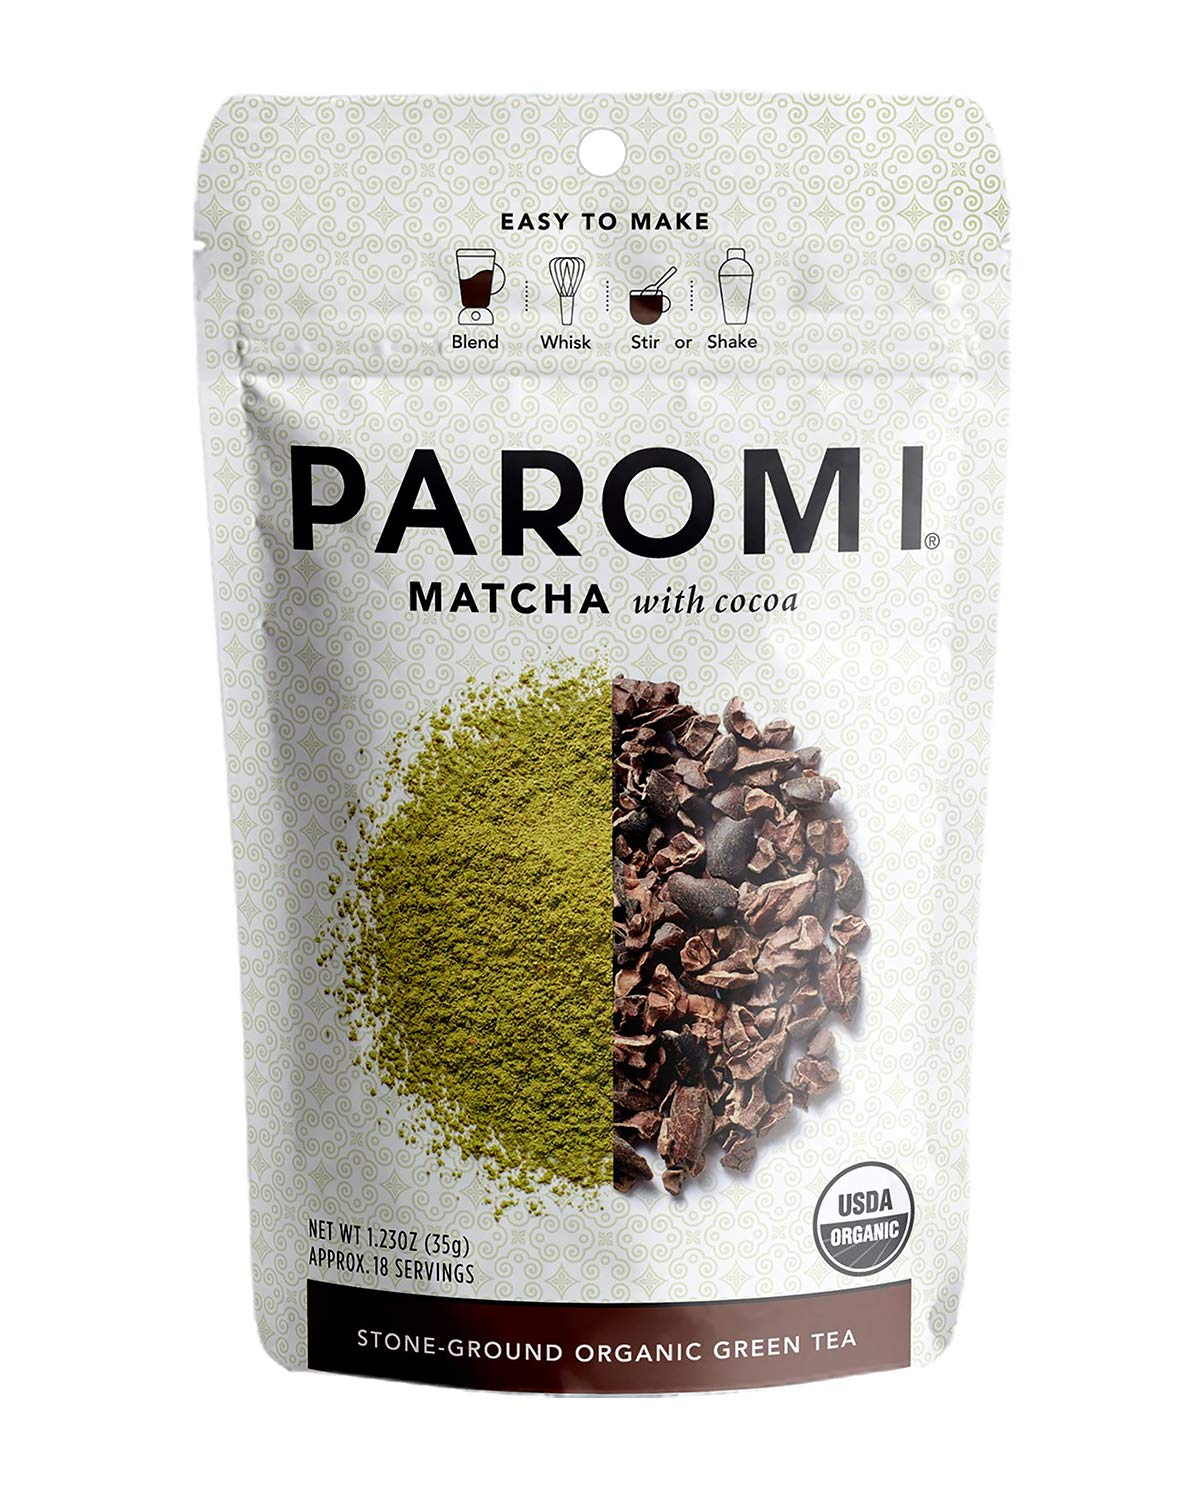 Paromi Tea Matcha San Diego Mall Outlet sale feature With Cocoa 35 Grams Organic Orga Stone-Ground